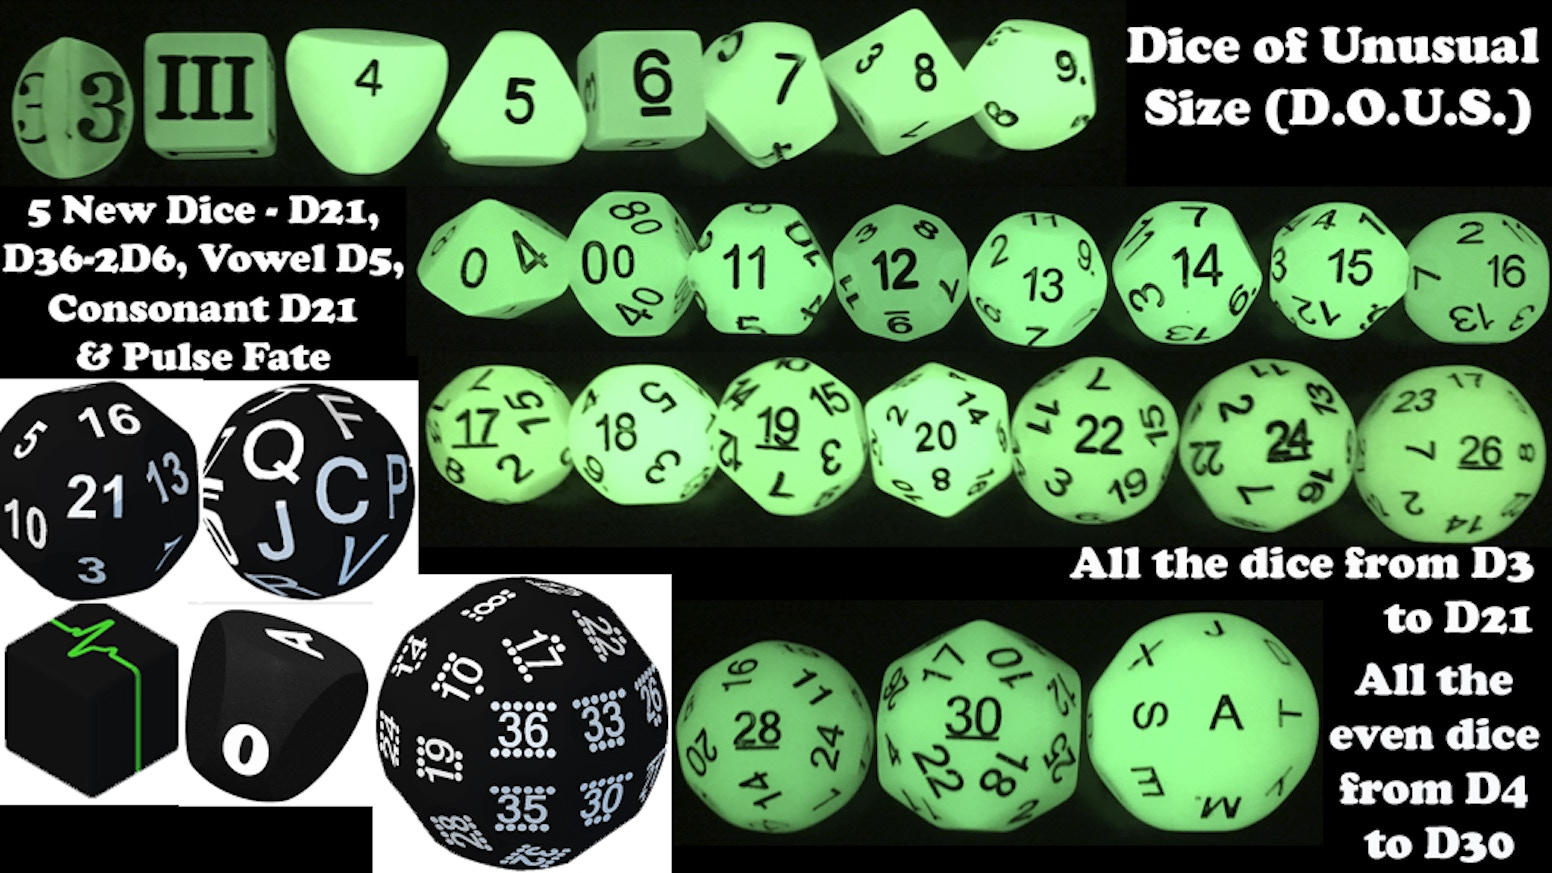 New unusual dice.  A D21, D36, Pulse Fudge Die, Vowel D5 and Consonant D21